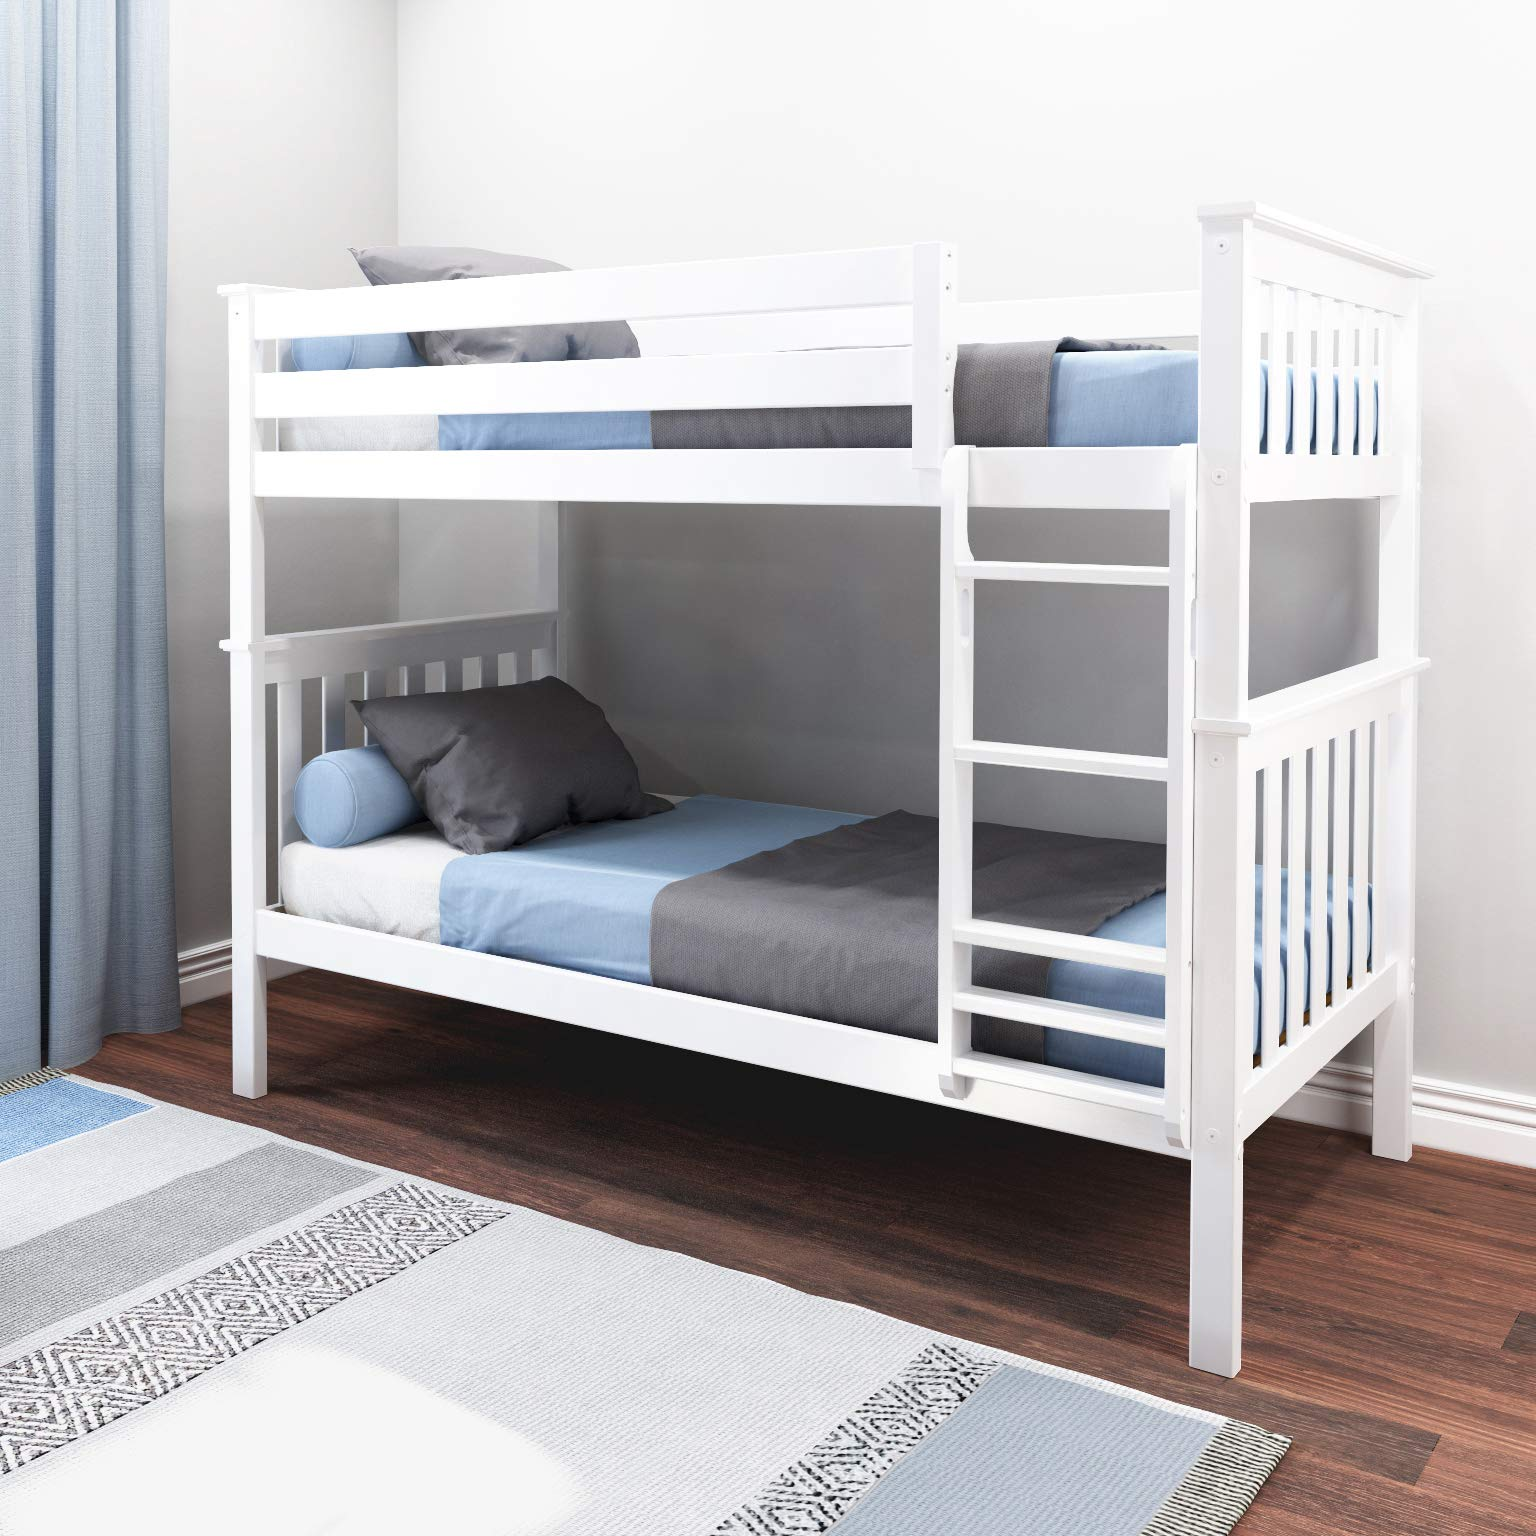 Max & Lily Bunk Bed, Twin, White